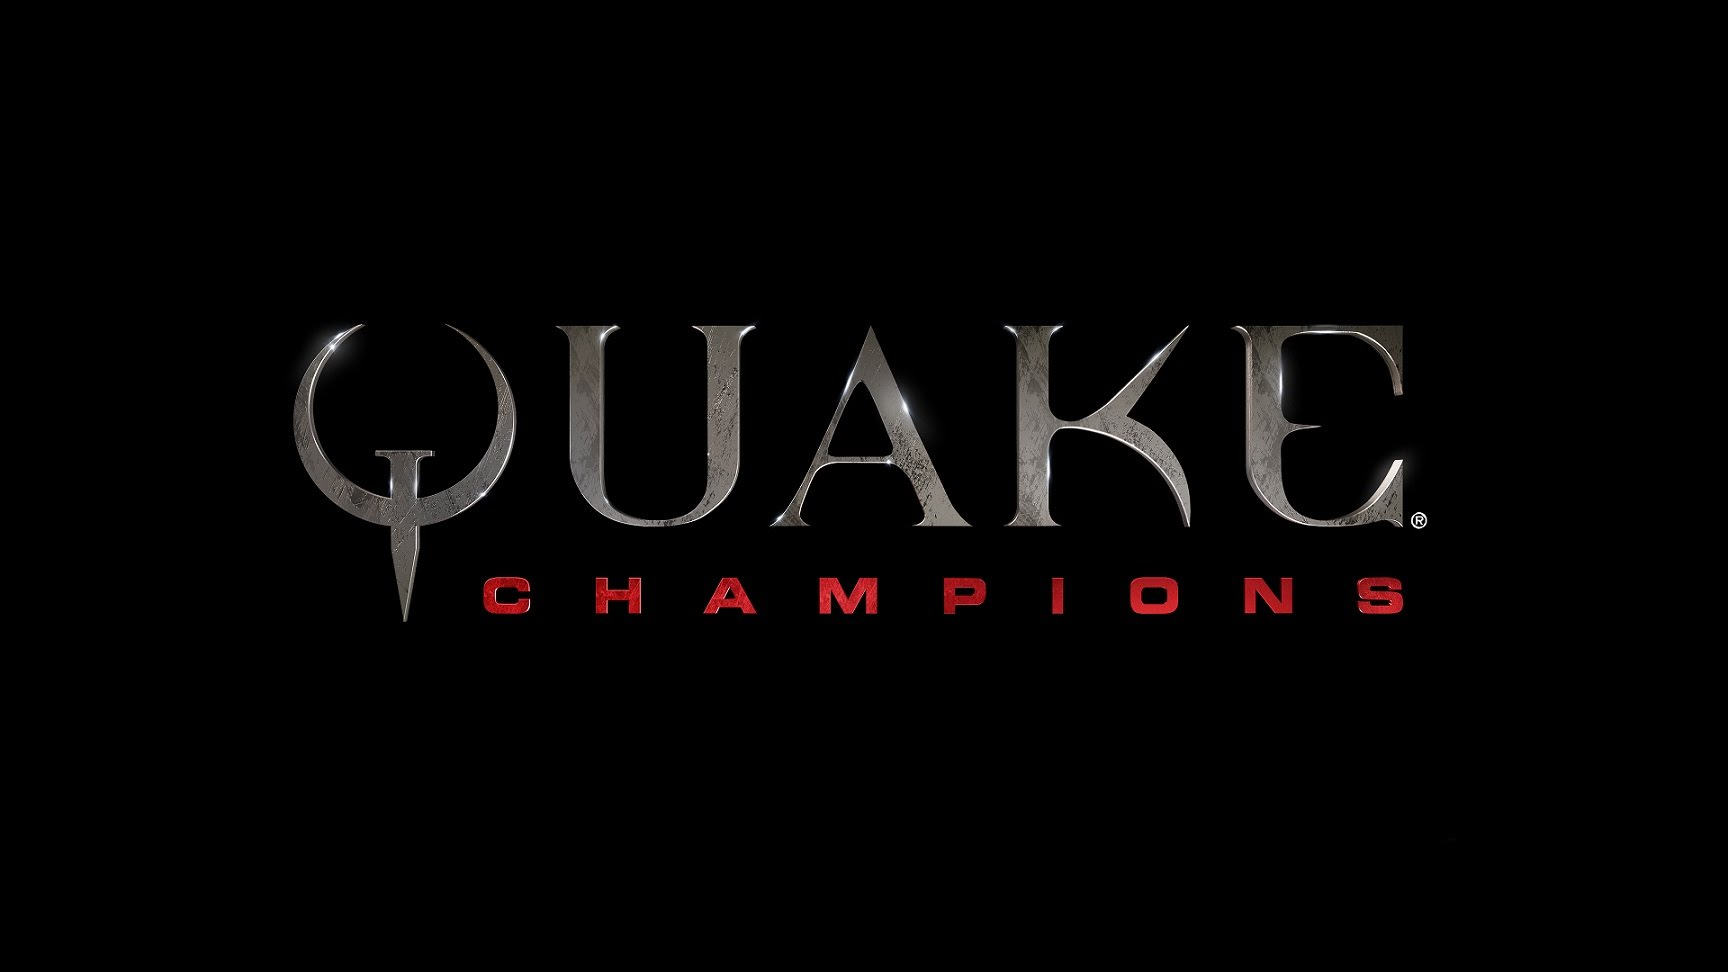 Quake Champions gameplay trailer released